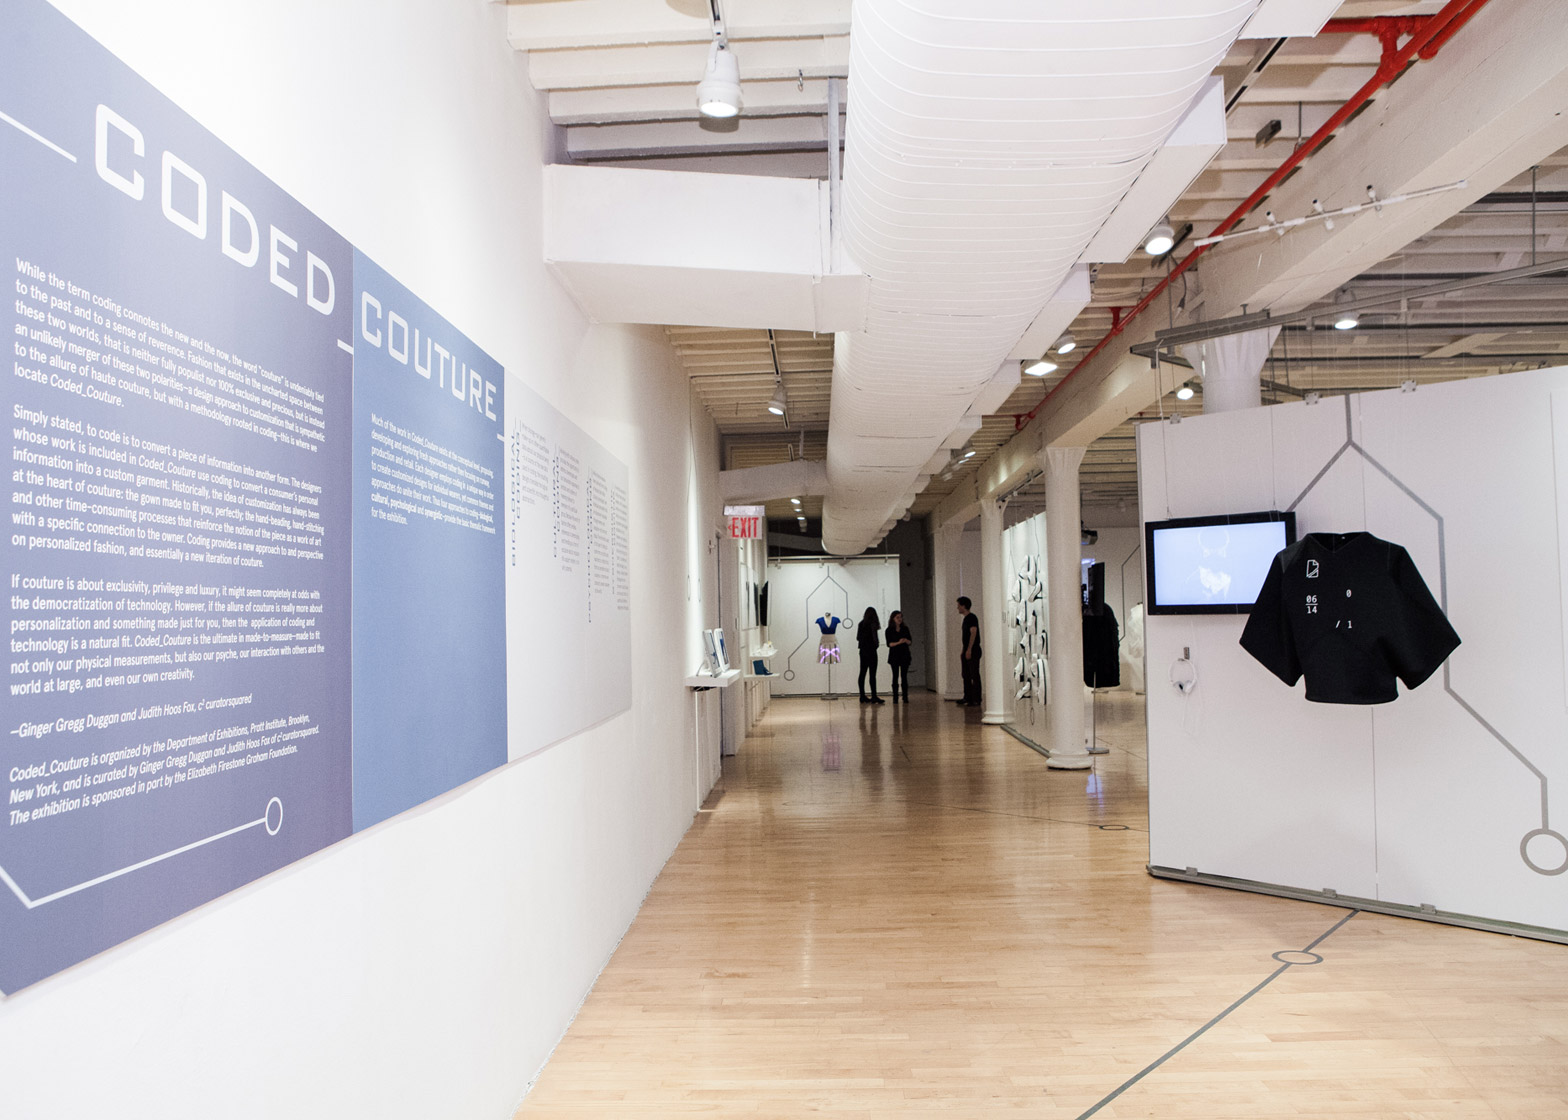 Coded Couture Fashion Exhibition At Pratt Institute In New